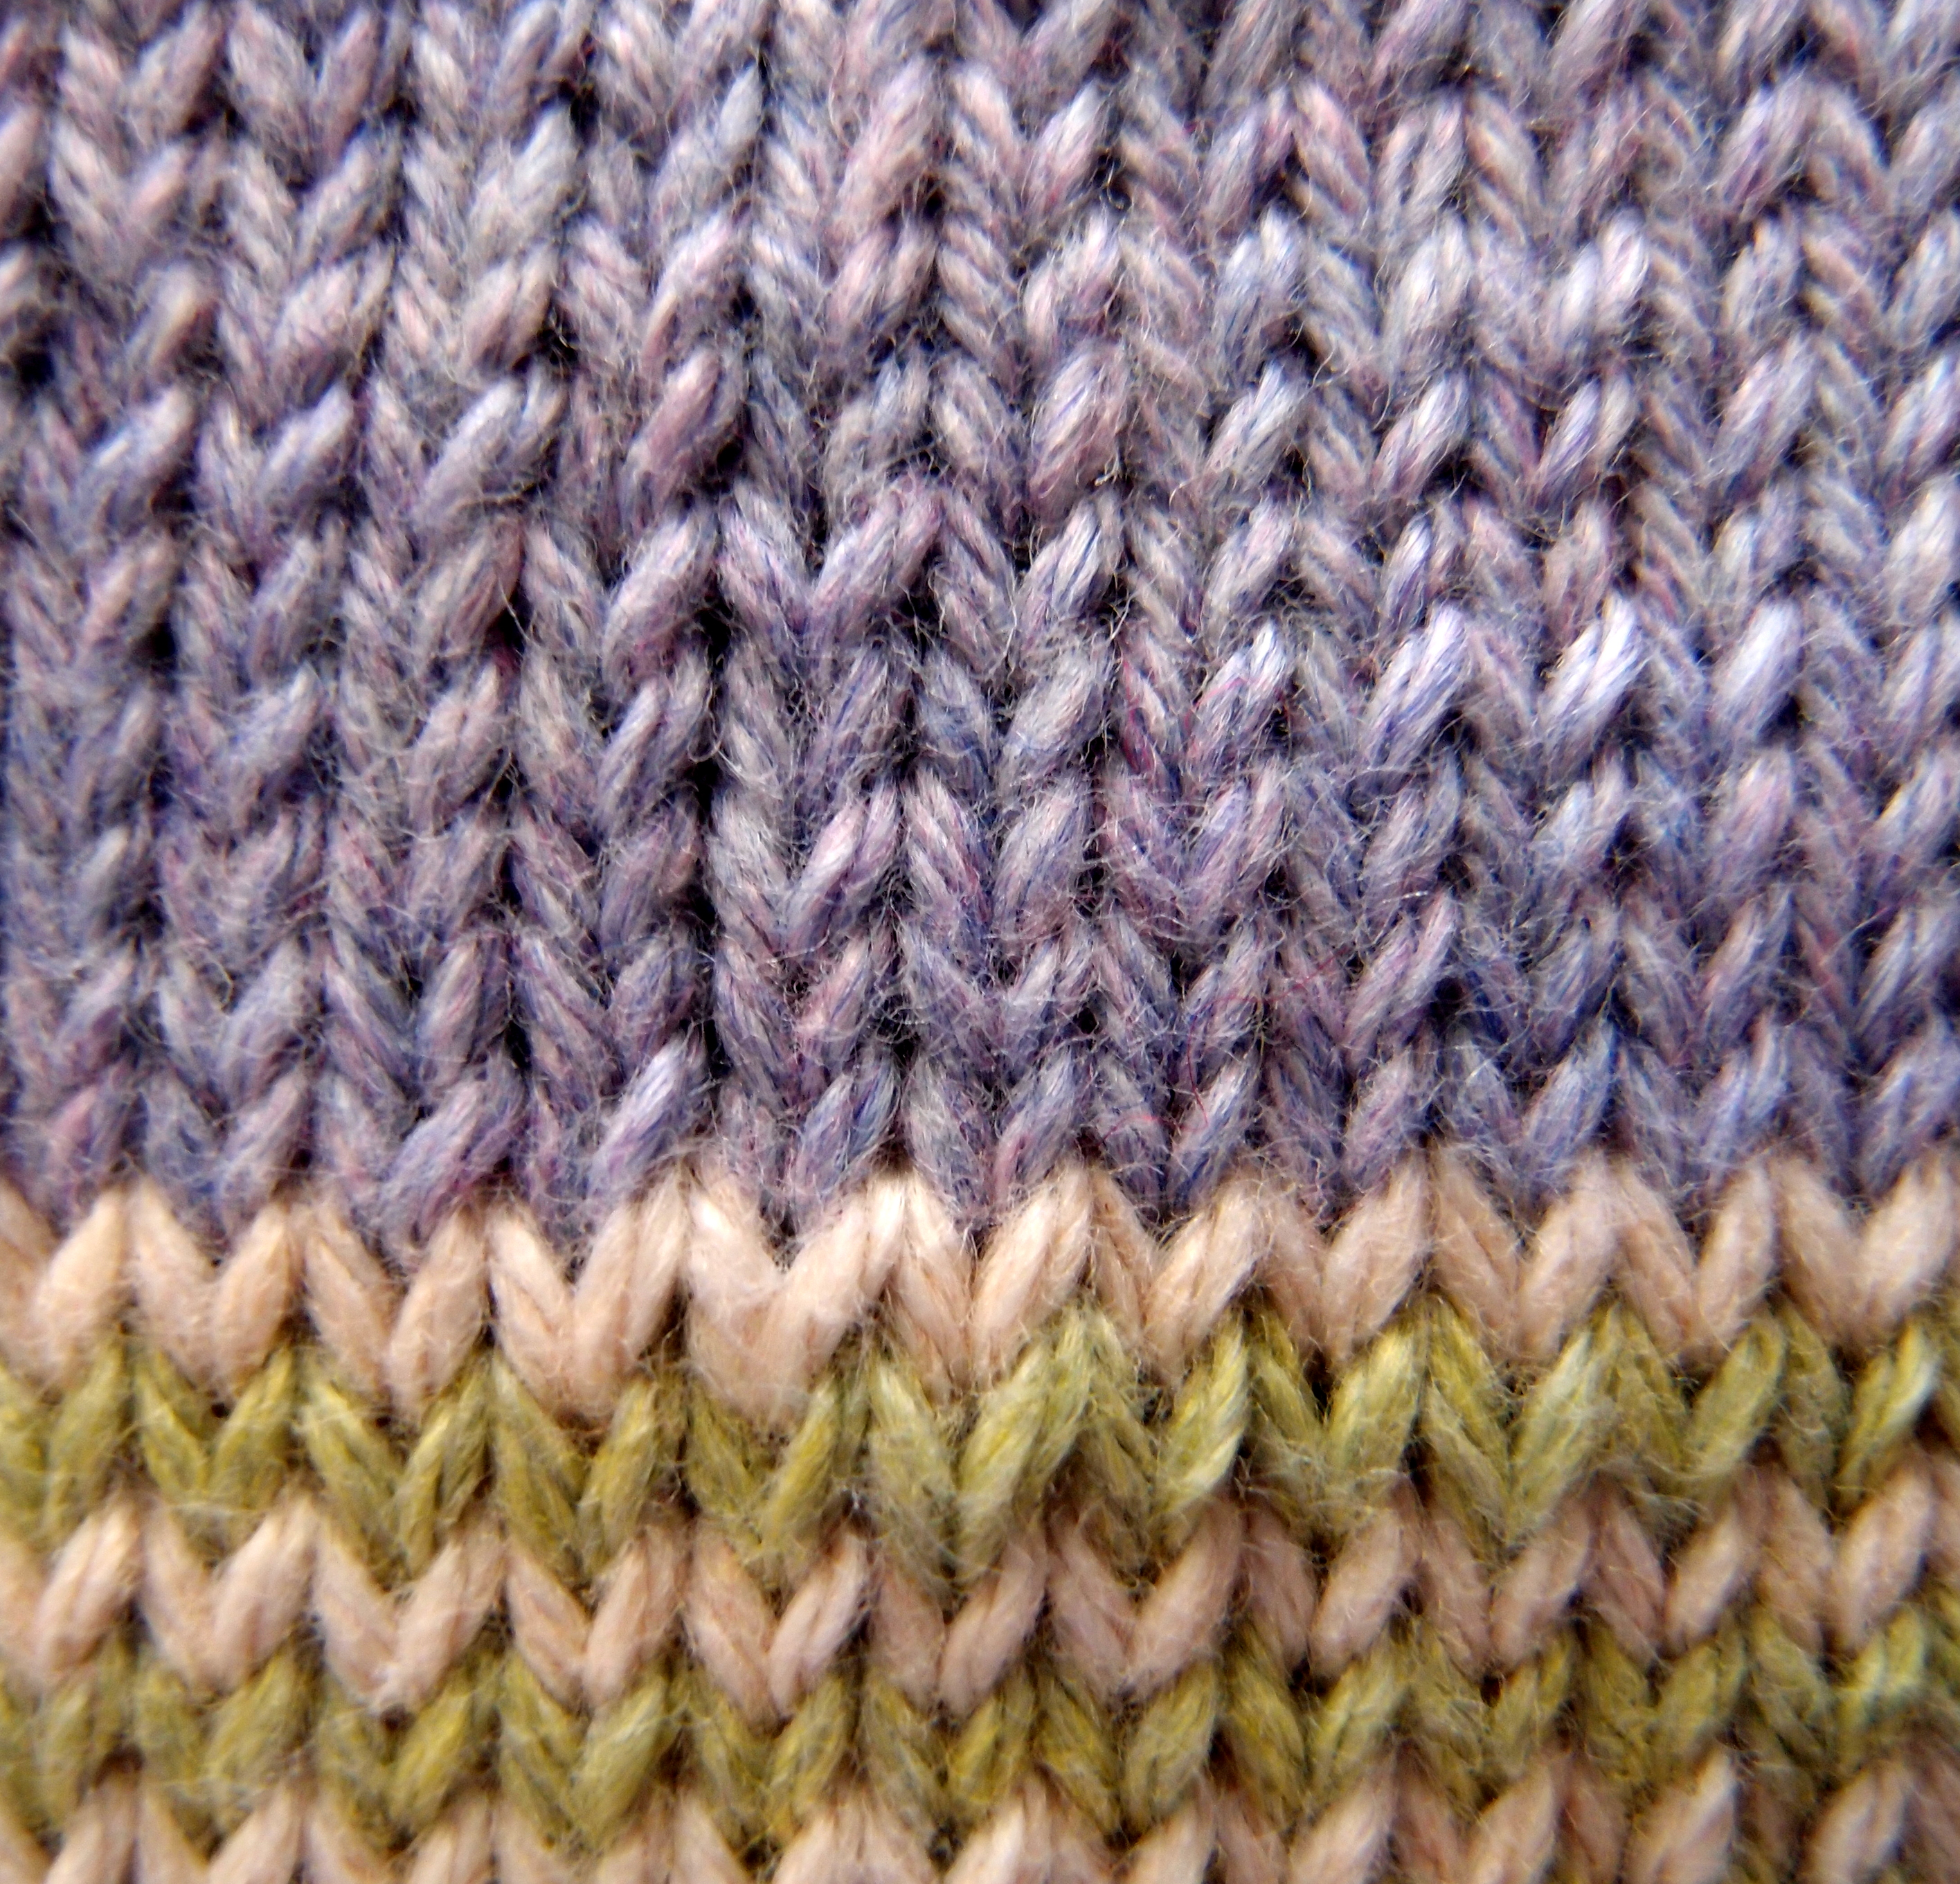 Patterns For Knit Fabric : File:Stockinette example front.JPG - Wikimedia Commons